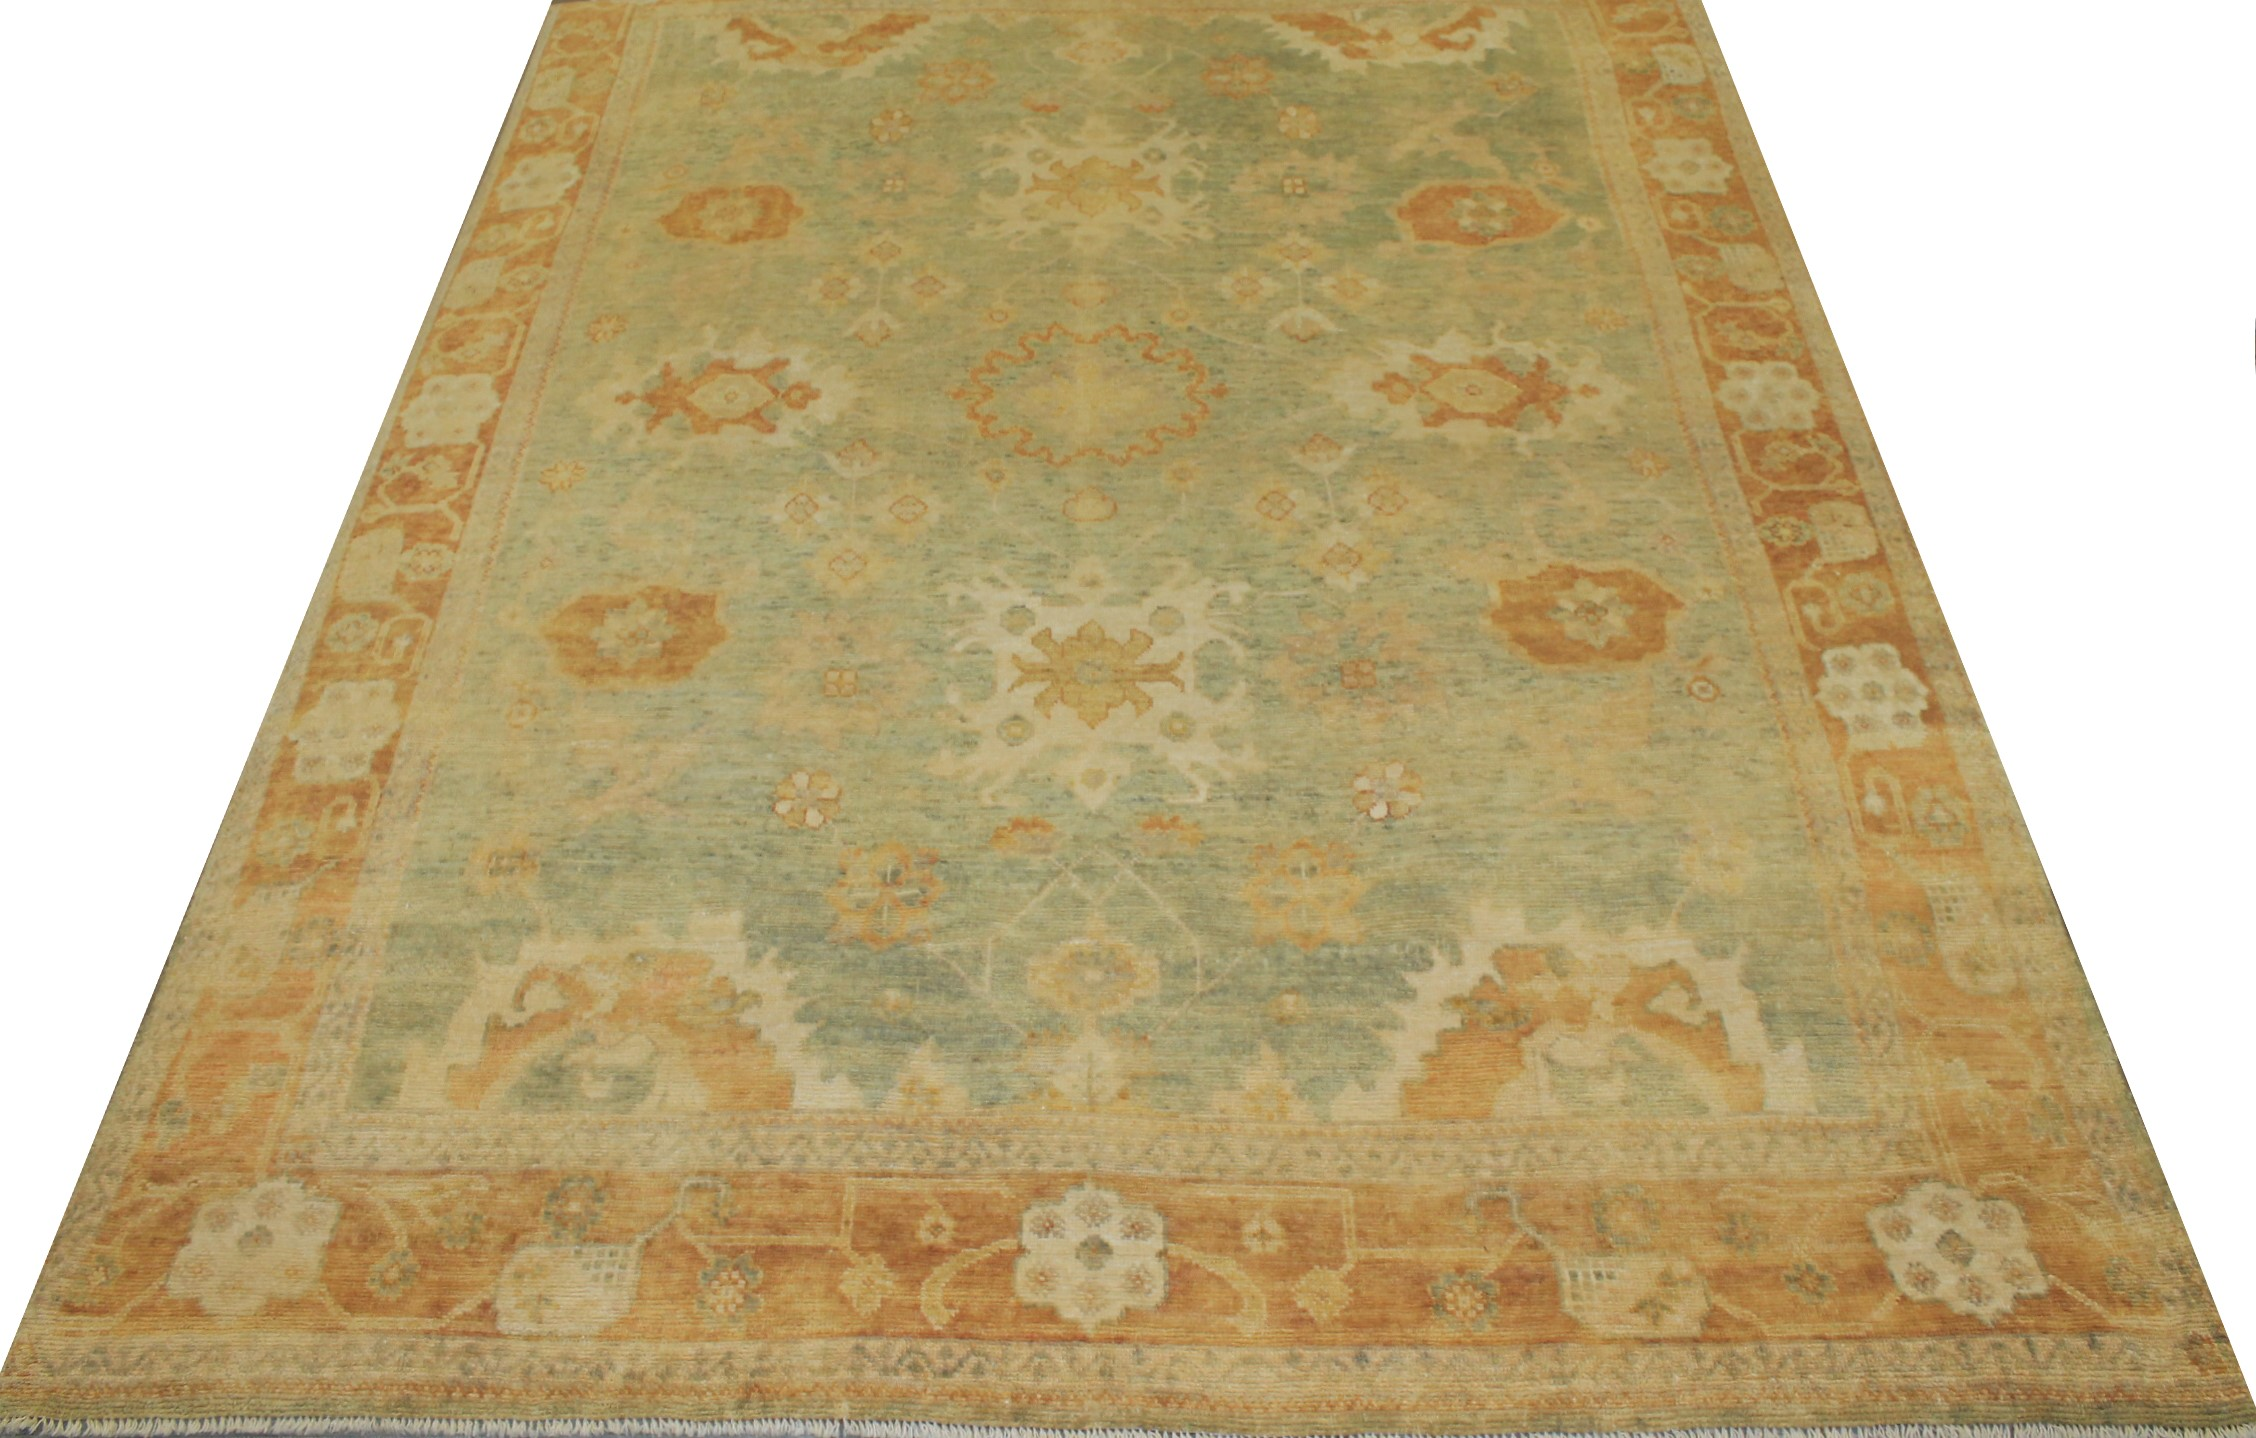 8x10 Oushak Hand Knotted Wool Area Rug - MR14861